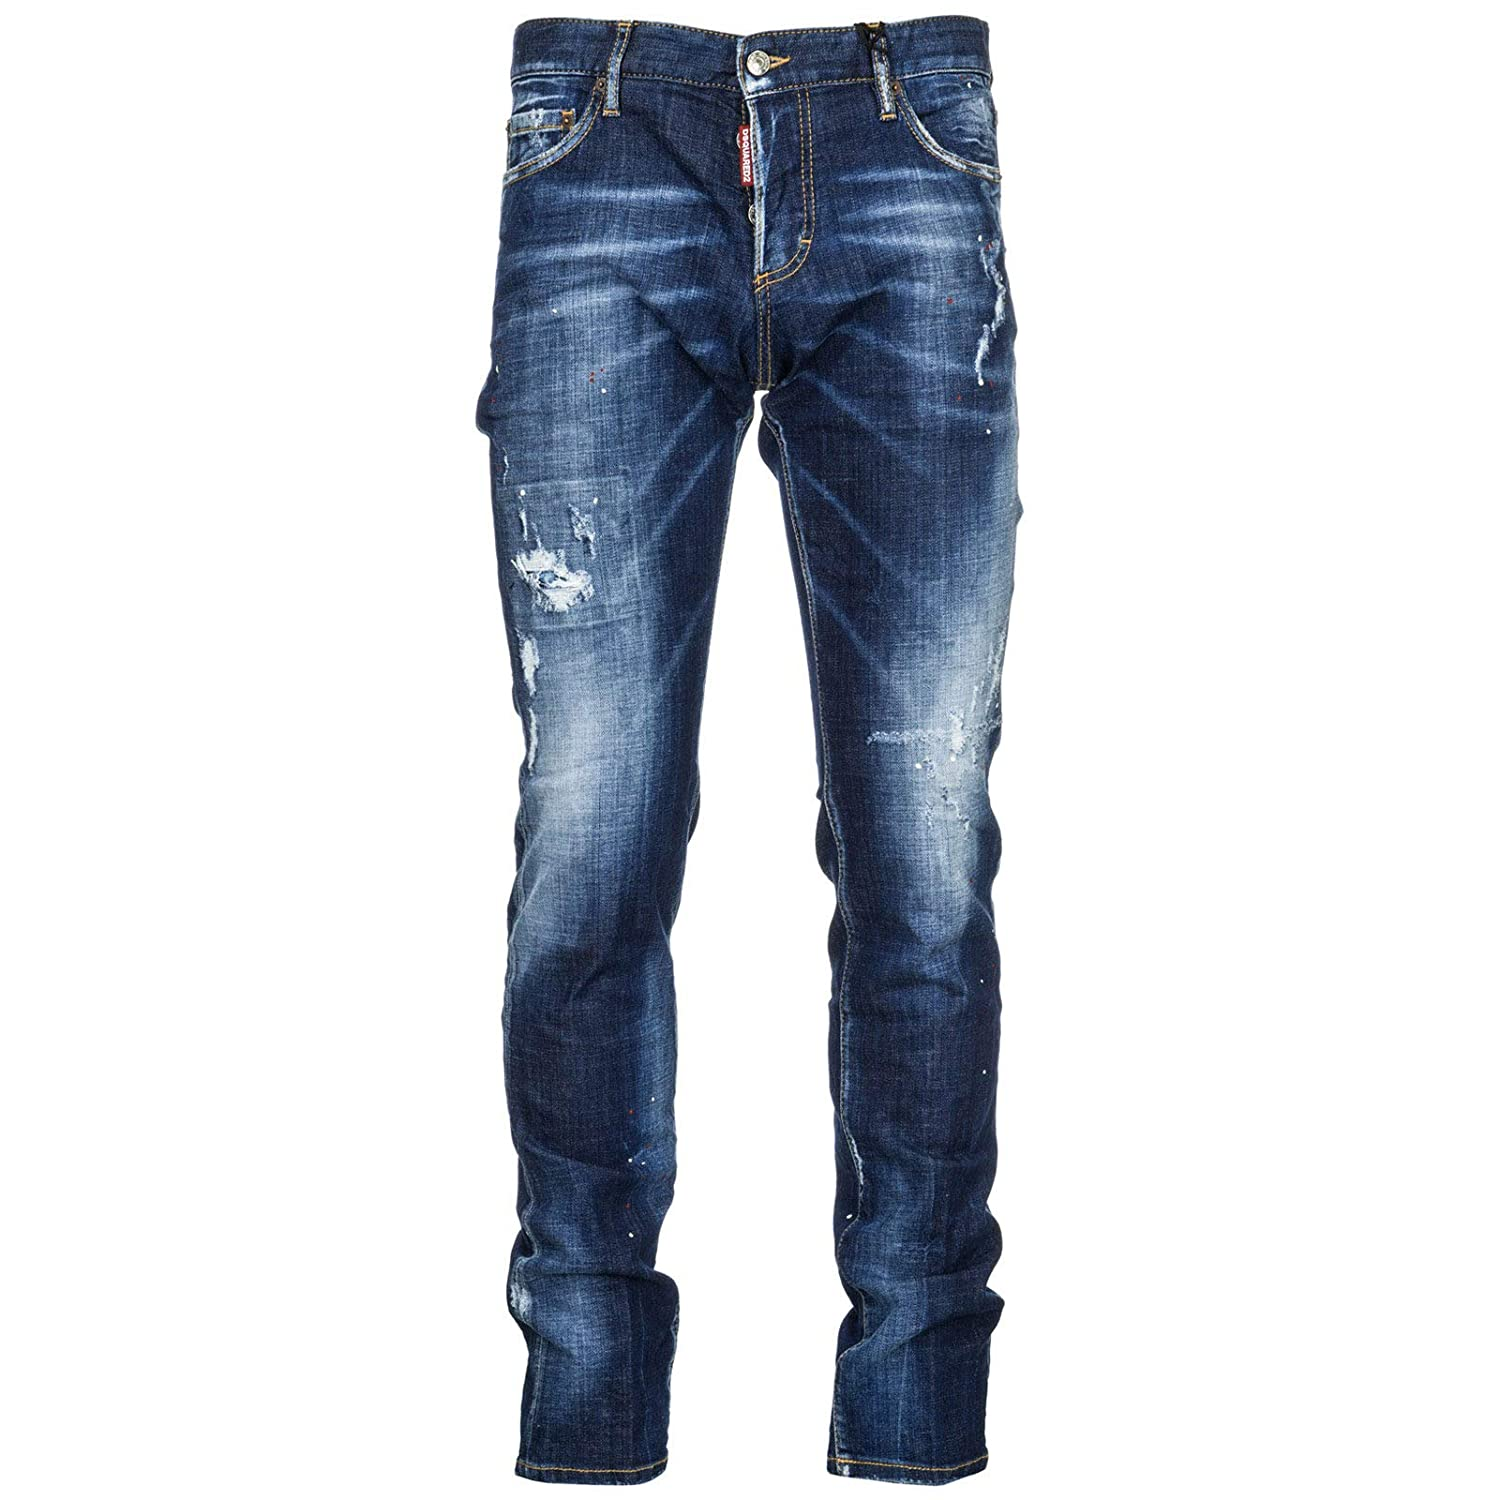 Dsquarosso2 Jeans Uomo Uomo Jeans Blu a25b22 - safefrombullies.com 44d1c8b4a3a